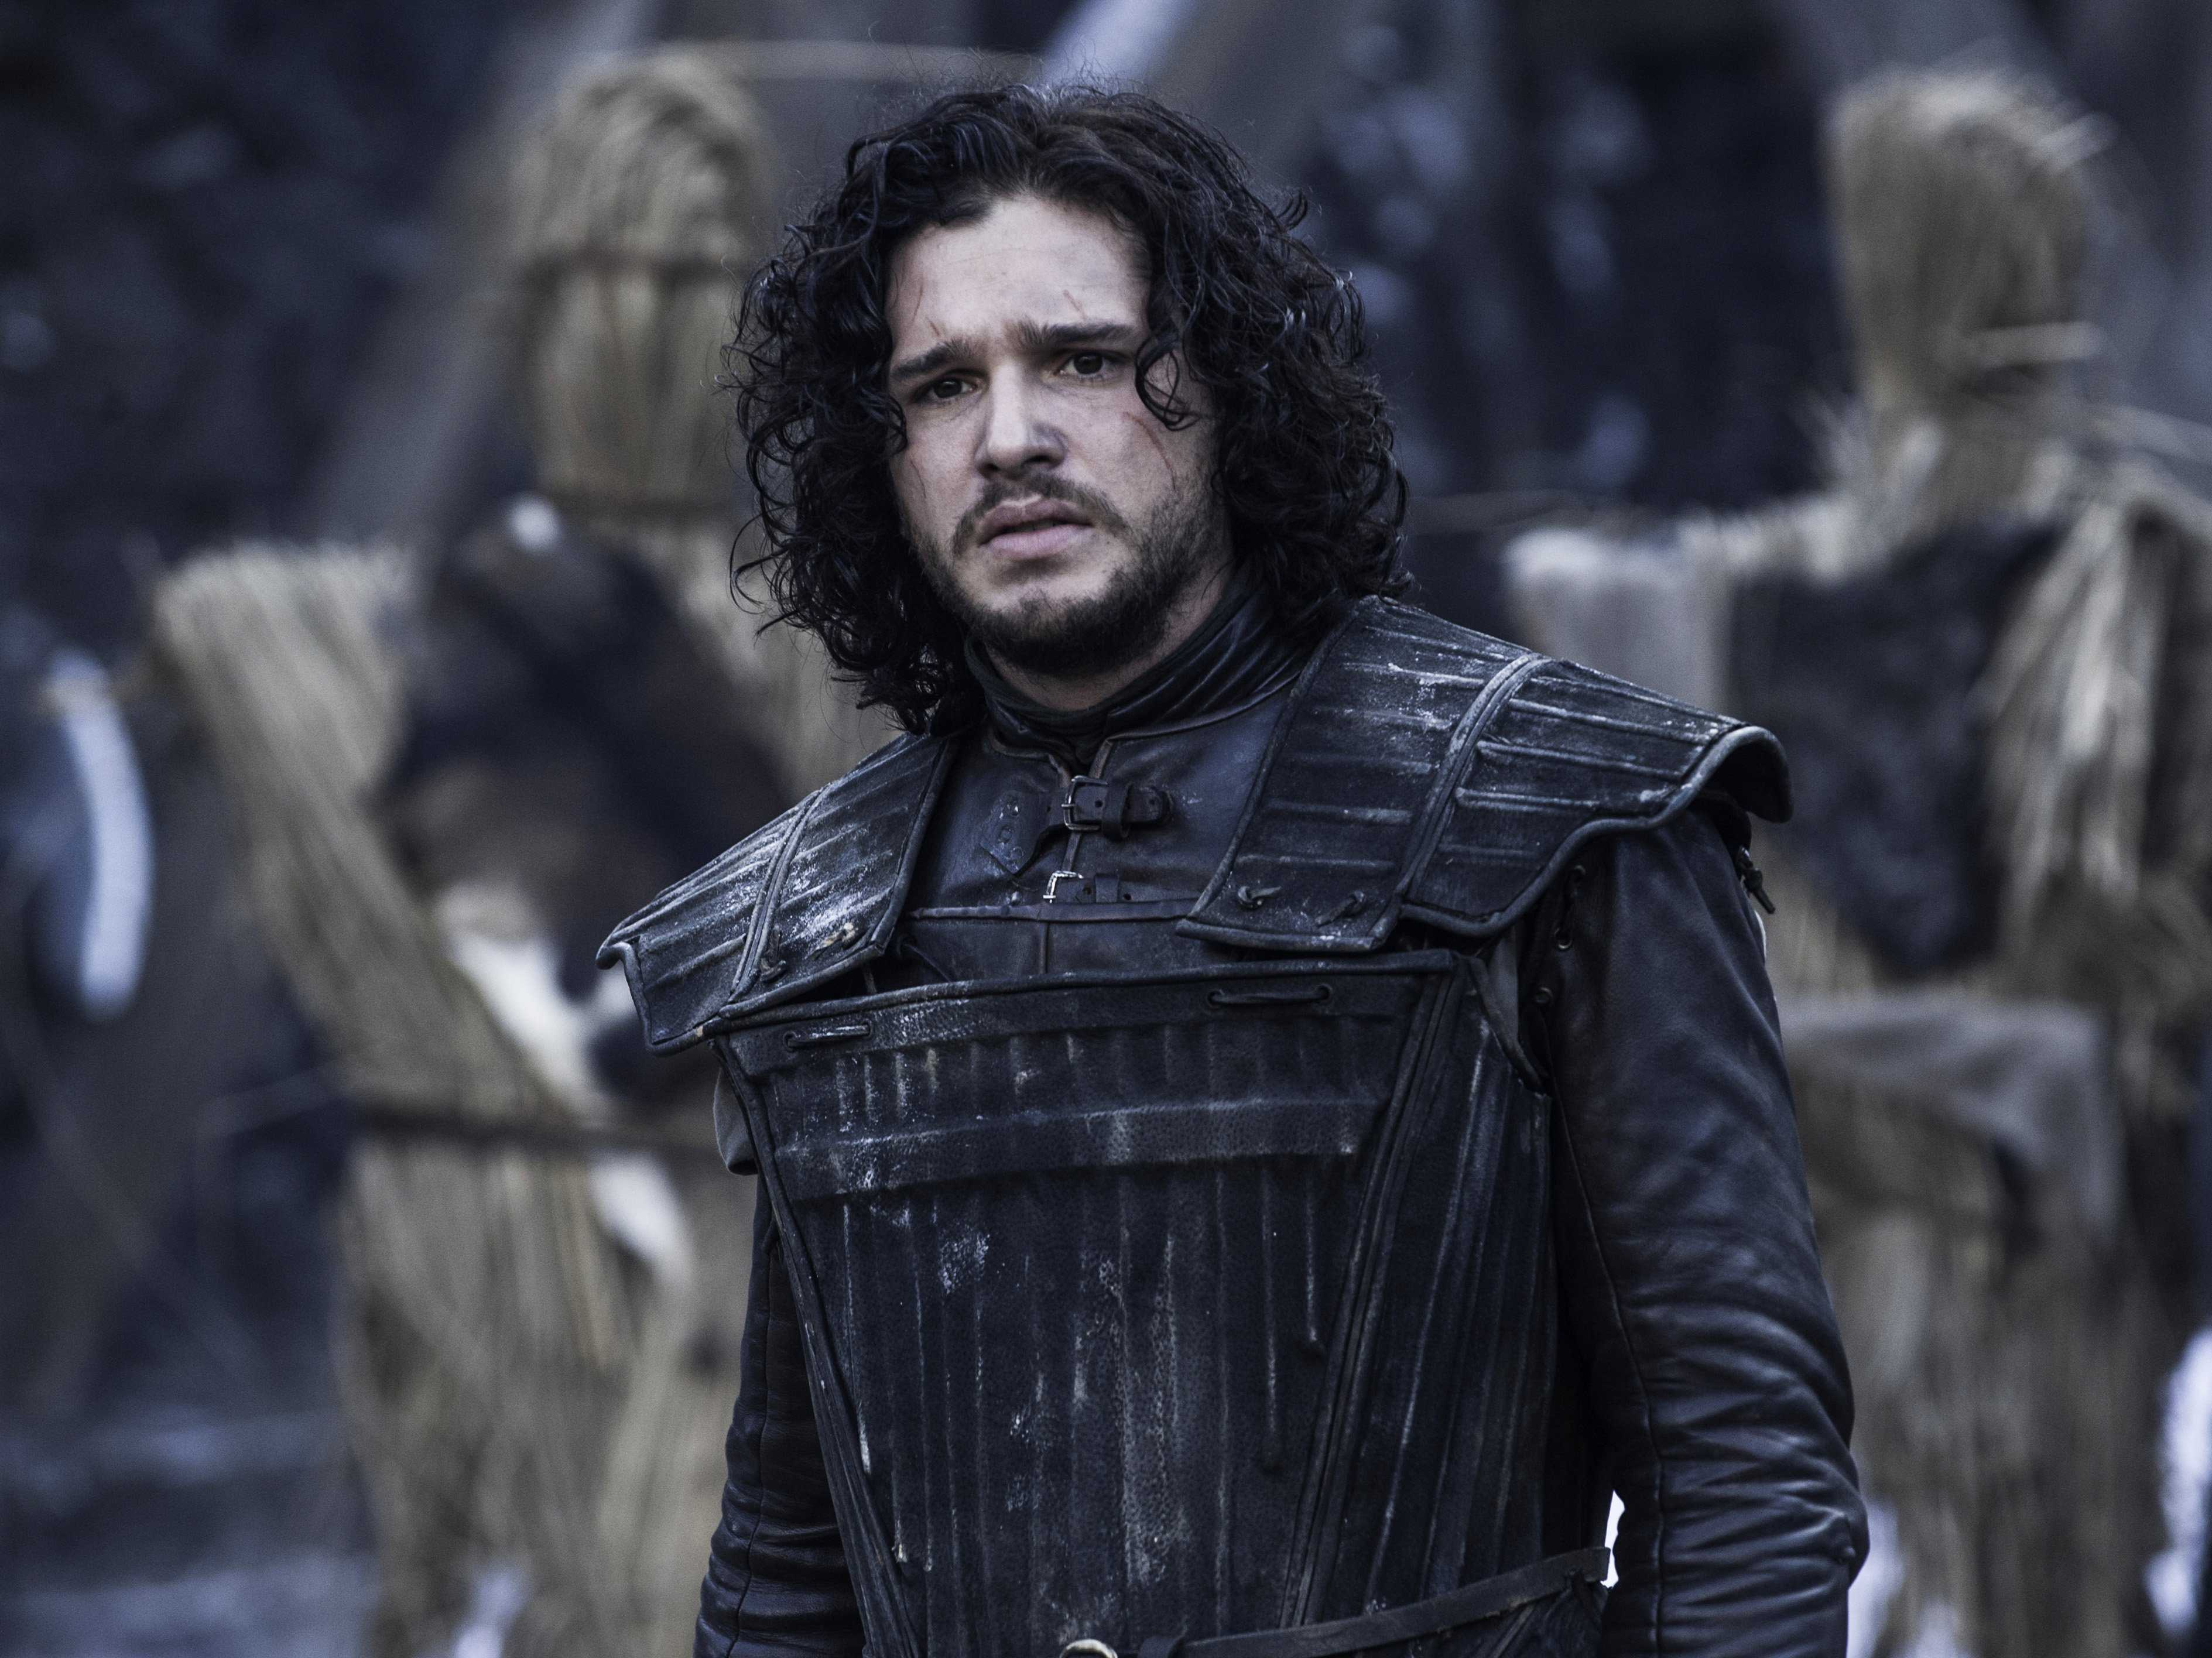 the-actor-who-plays-jon-snow-may-have-accidentally-revealed-his-game-of-thrones-fate